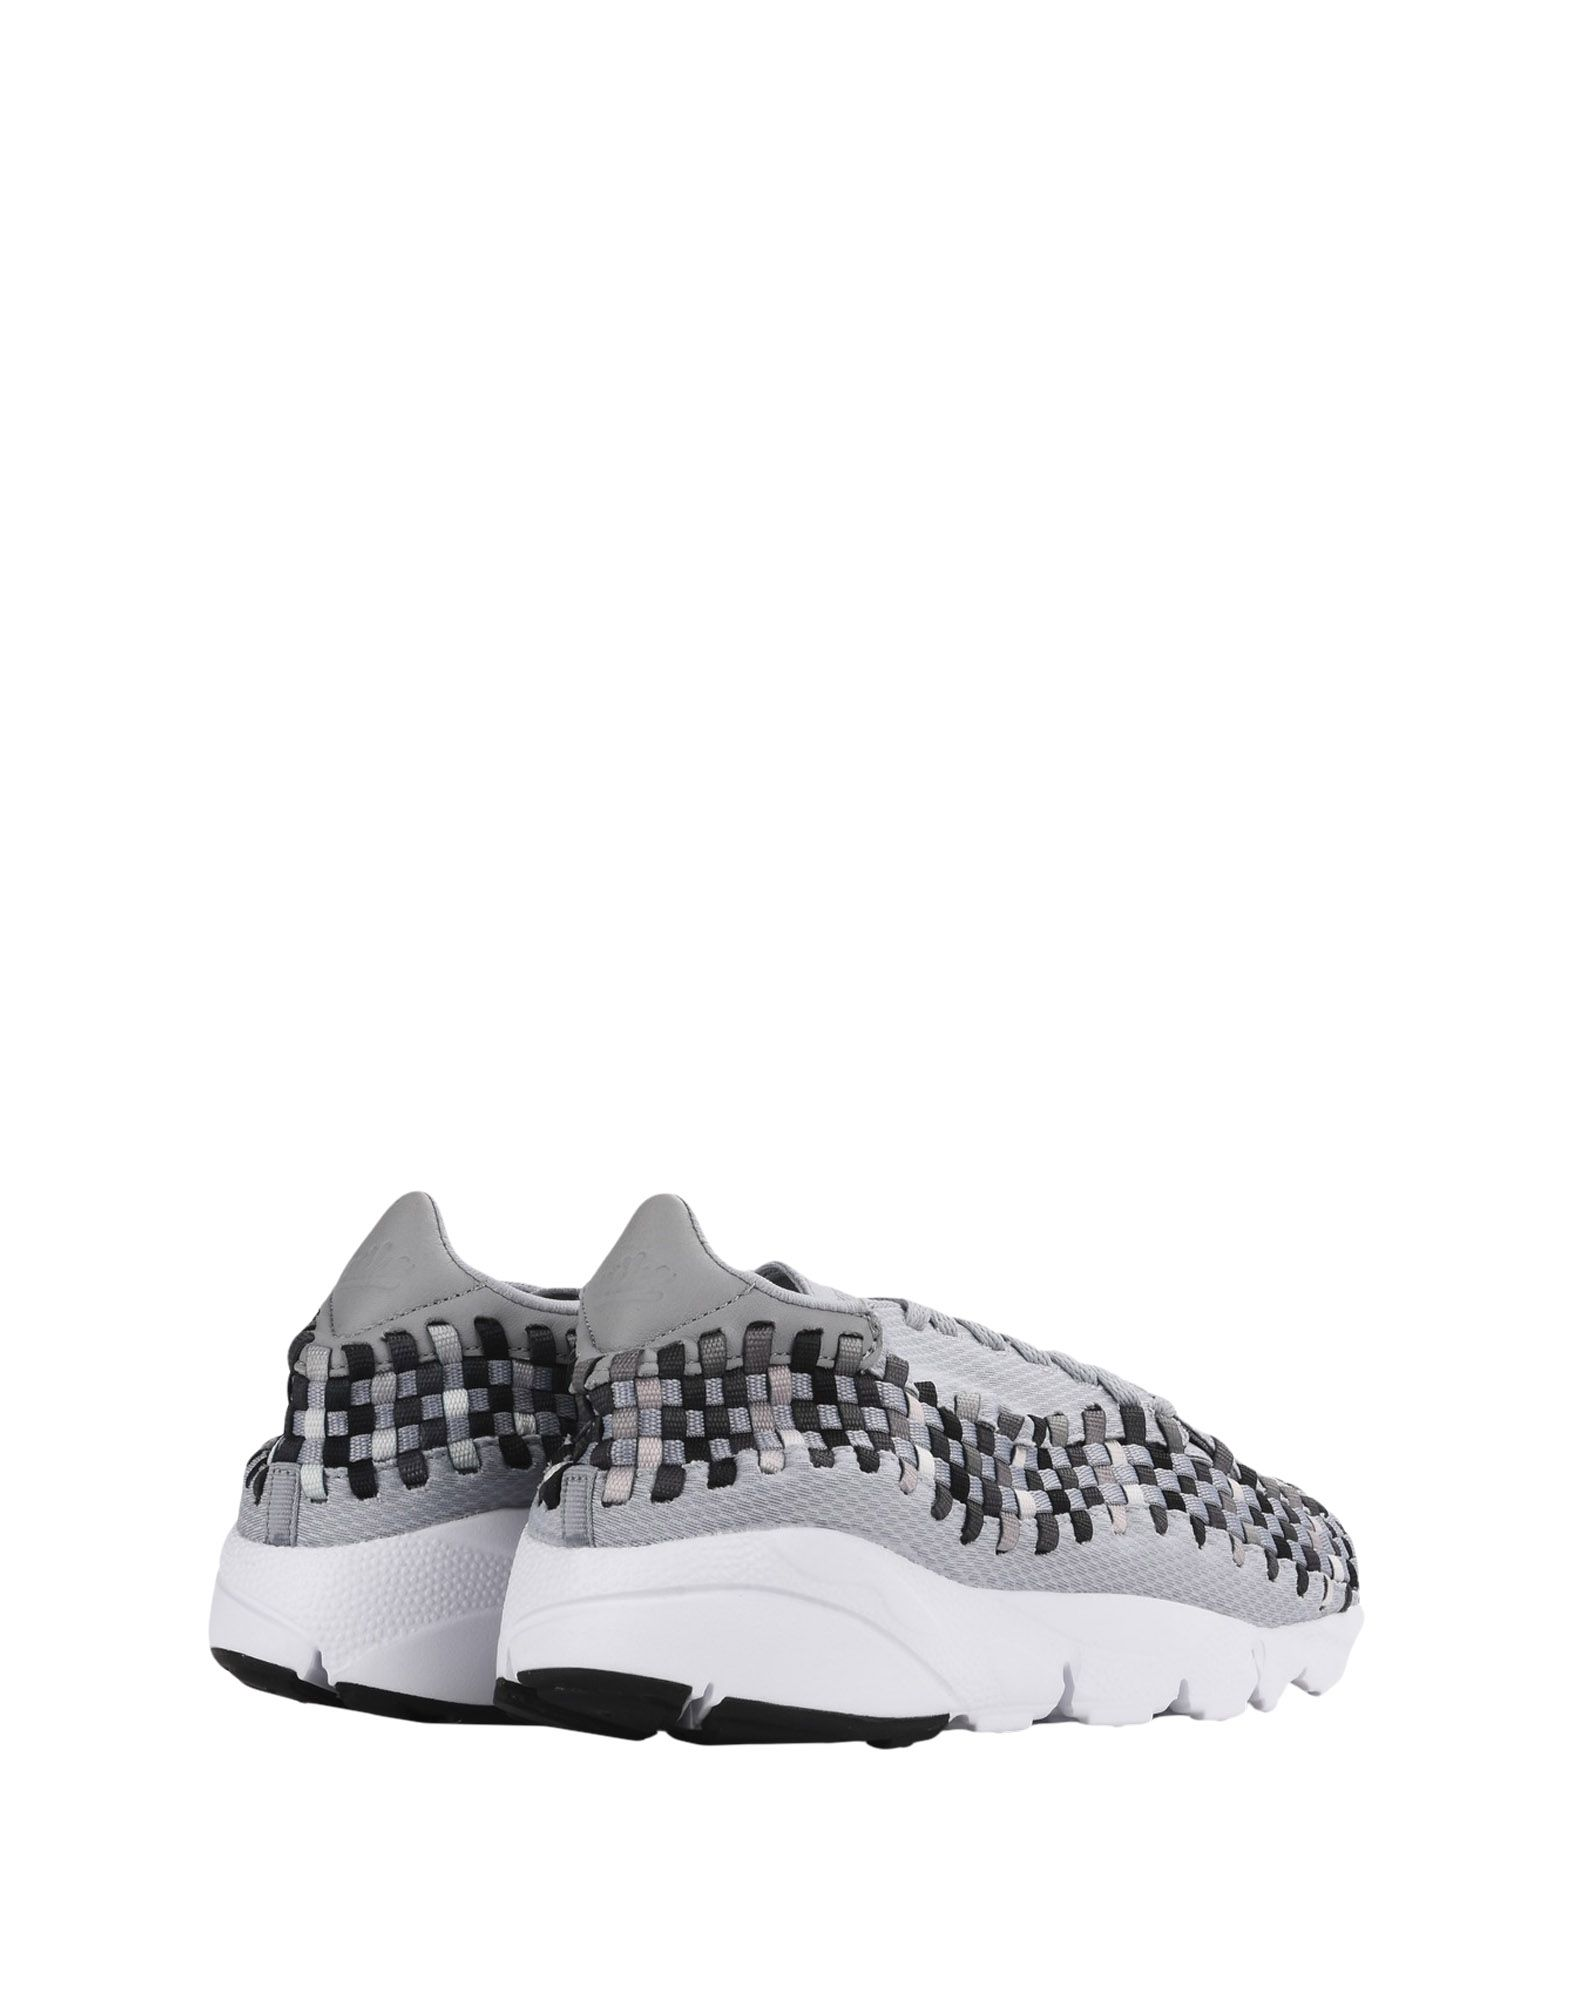 Sneakers Nike  Air Footscape Woven - Homme - Sneakers Nike sur